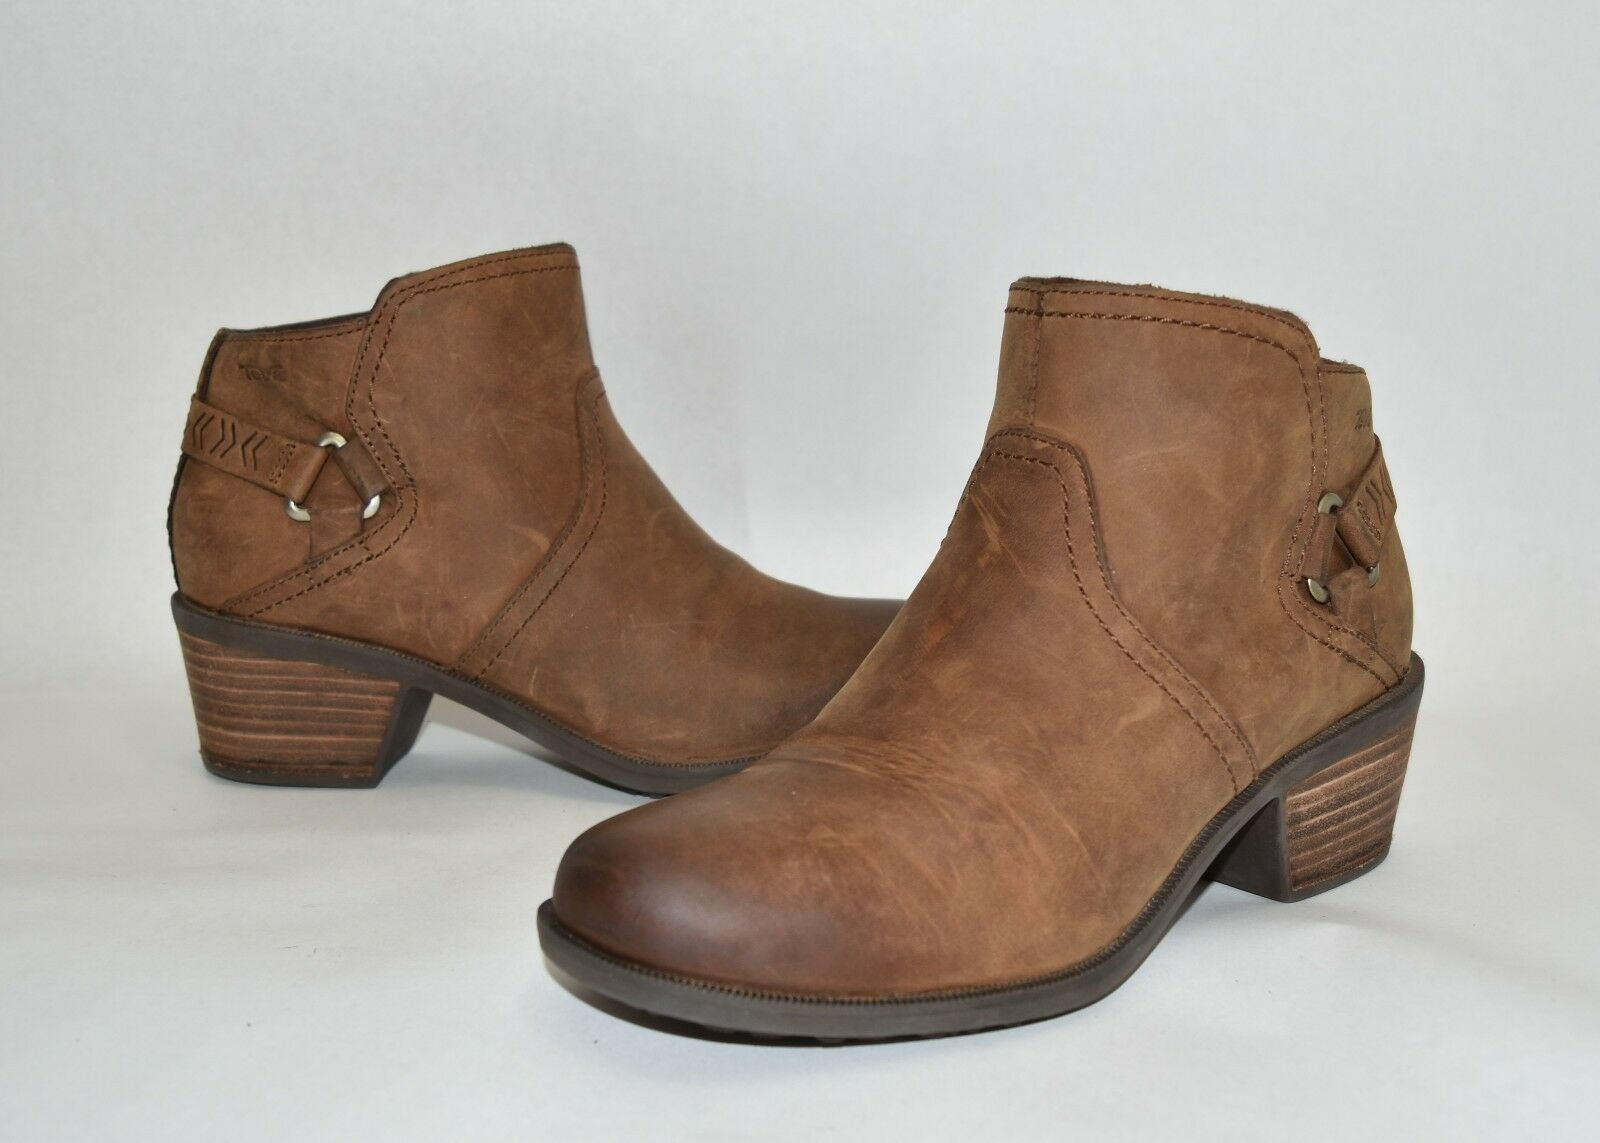 Teva 'Foxy' Bootie Brown Leather Size 7 1017161